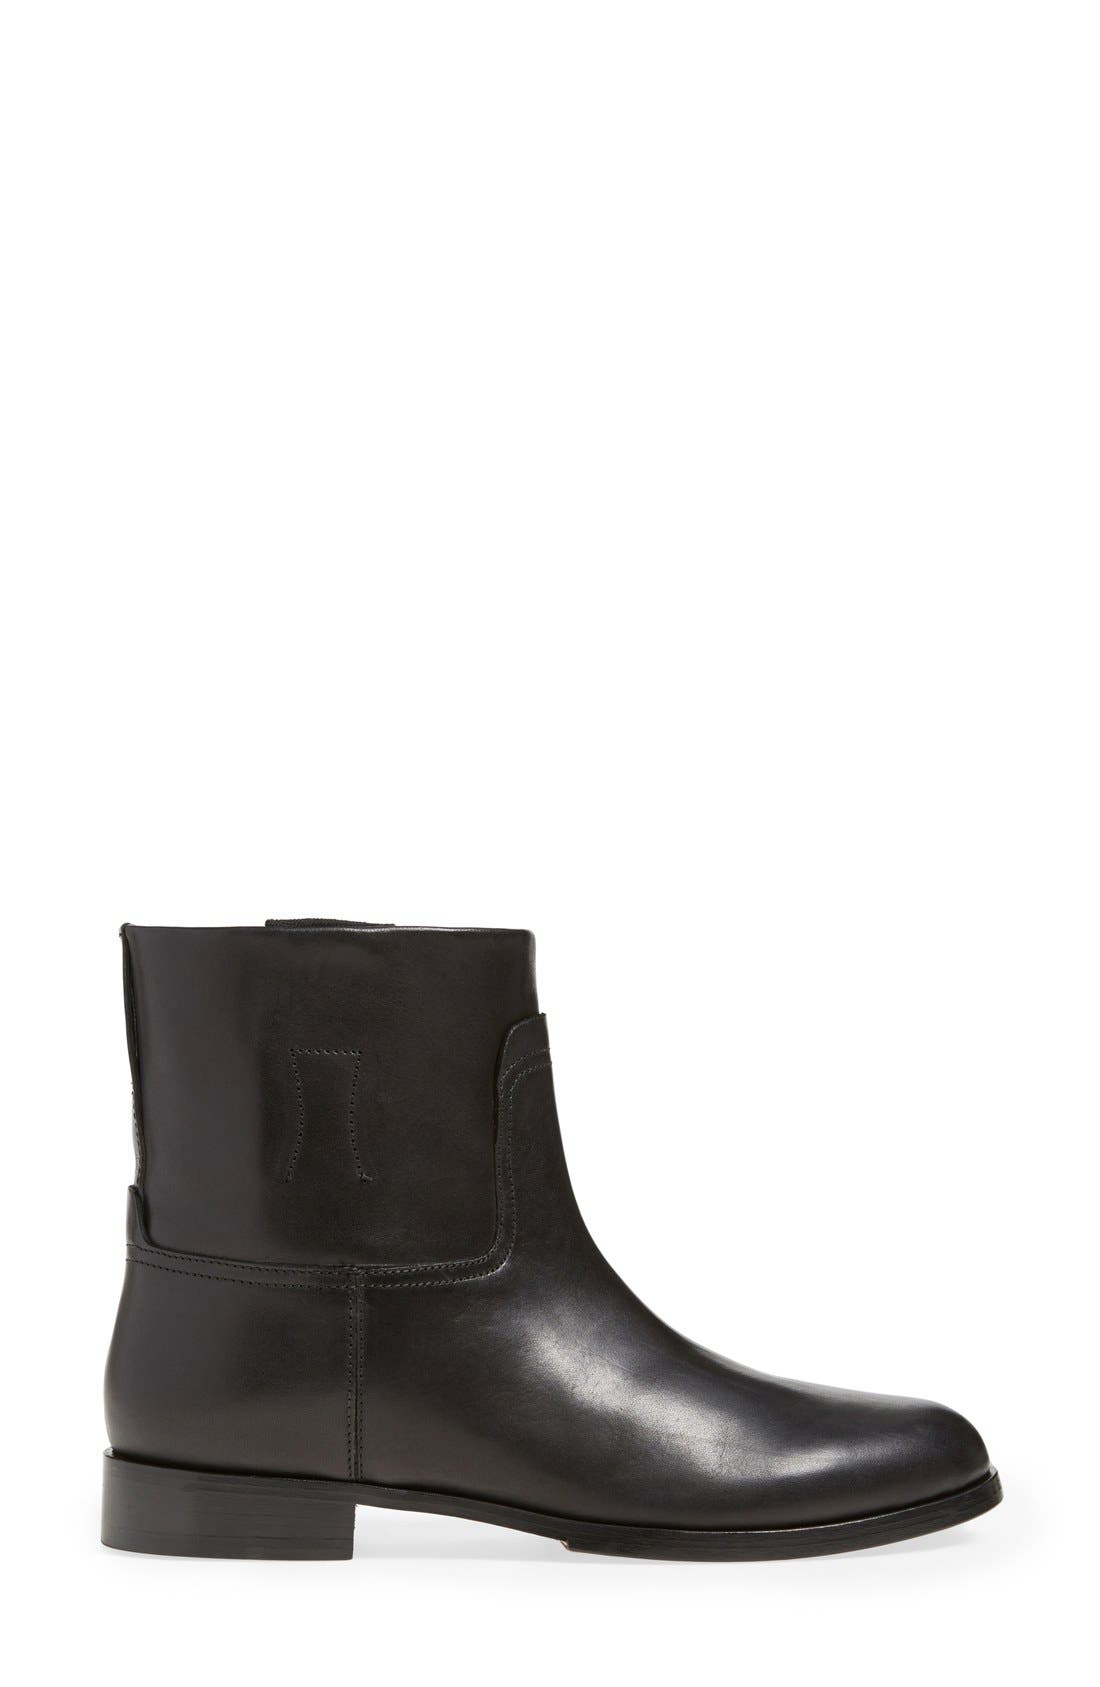 RAG & BONE,                             'Holly' Ankle Bootie,                             Alternate thumbnail 2, color,                             001